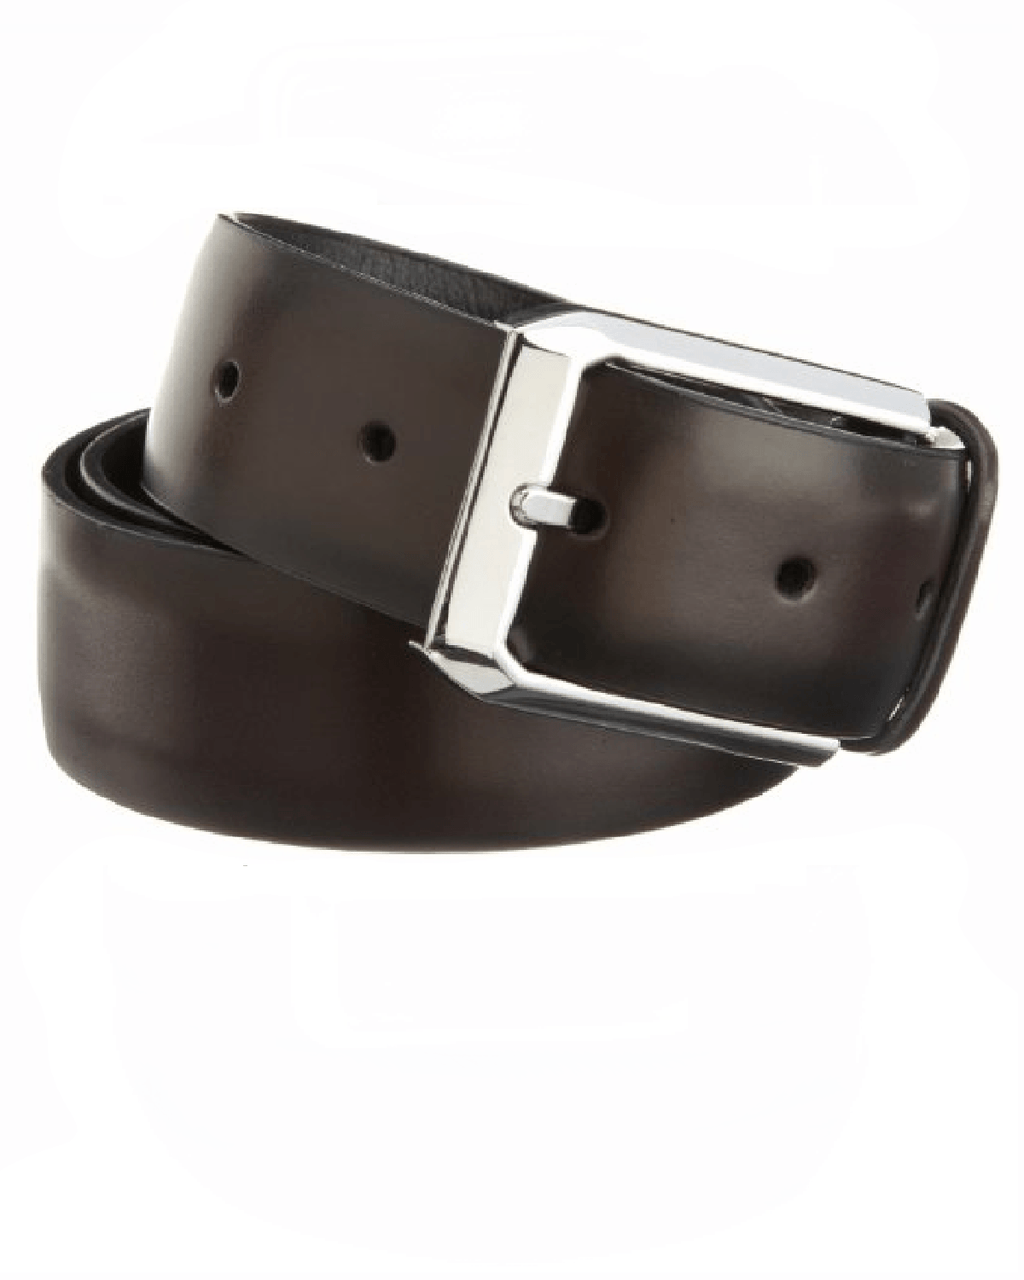 Geoffrey Beene Men's Soft Touch Dress Belt-GEOFFREY BEENE-Fashionbarn shop